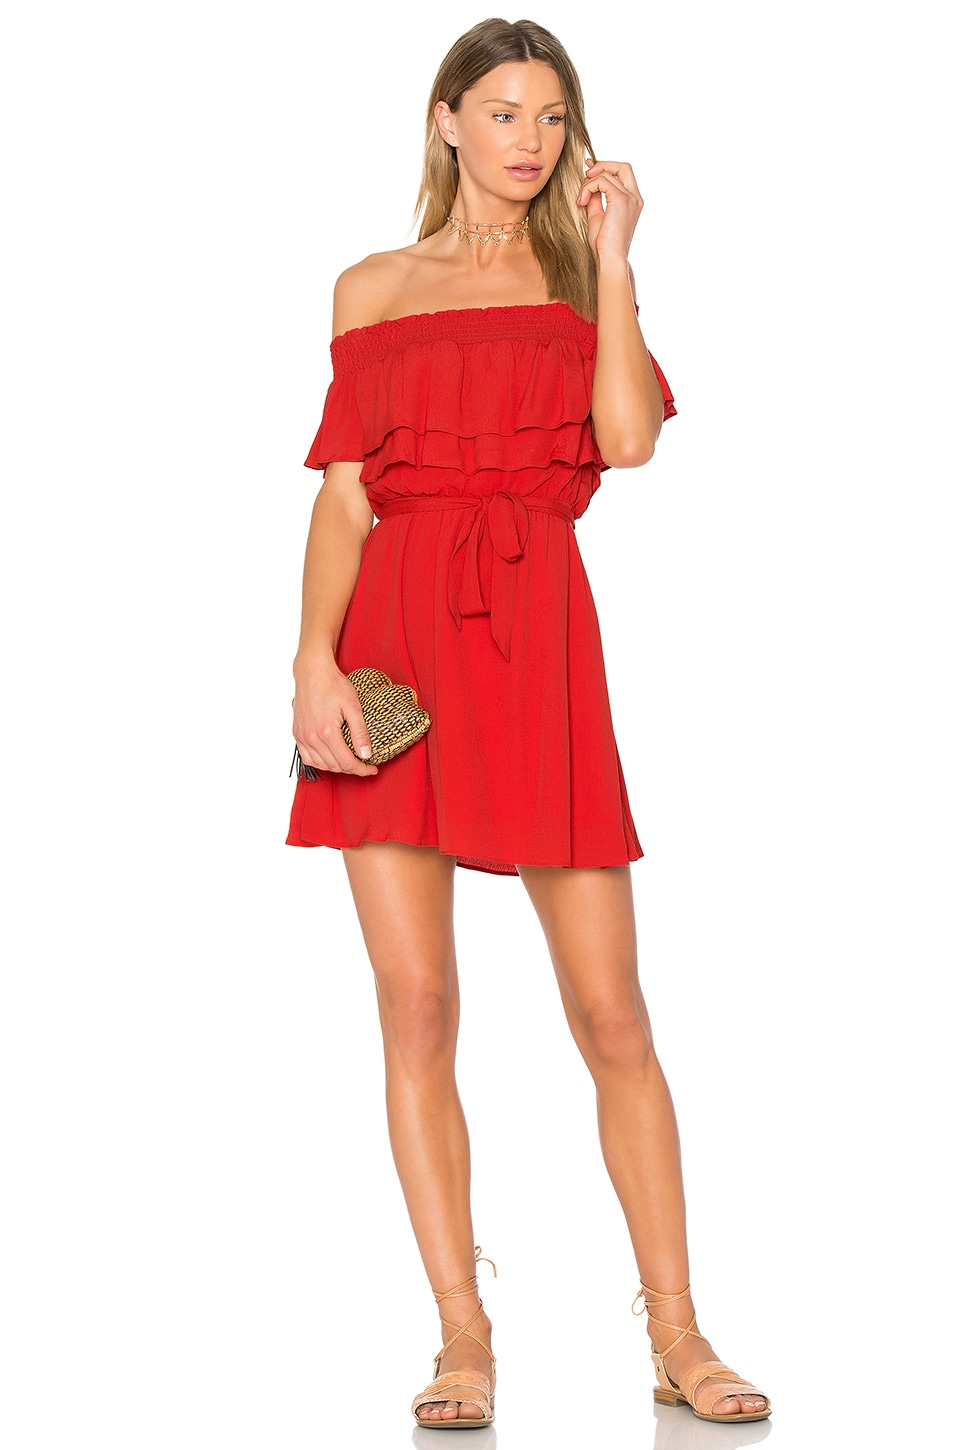 Lovers + Friends Suntime Dress in Red